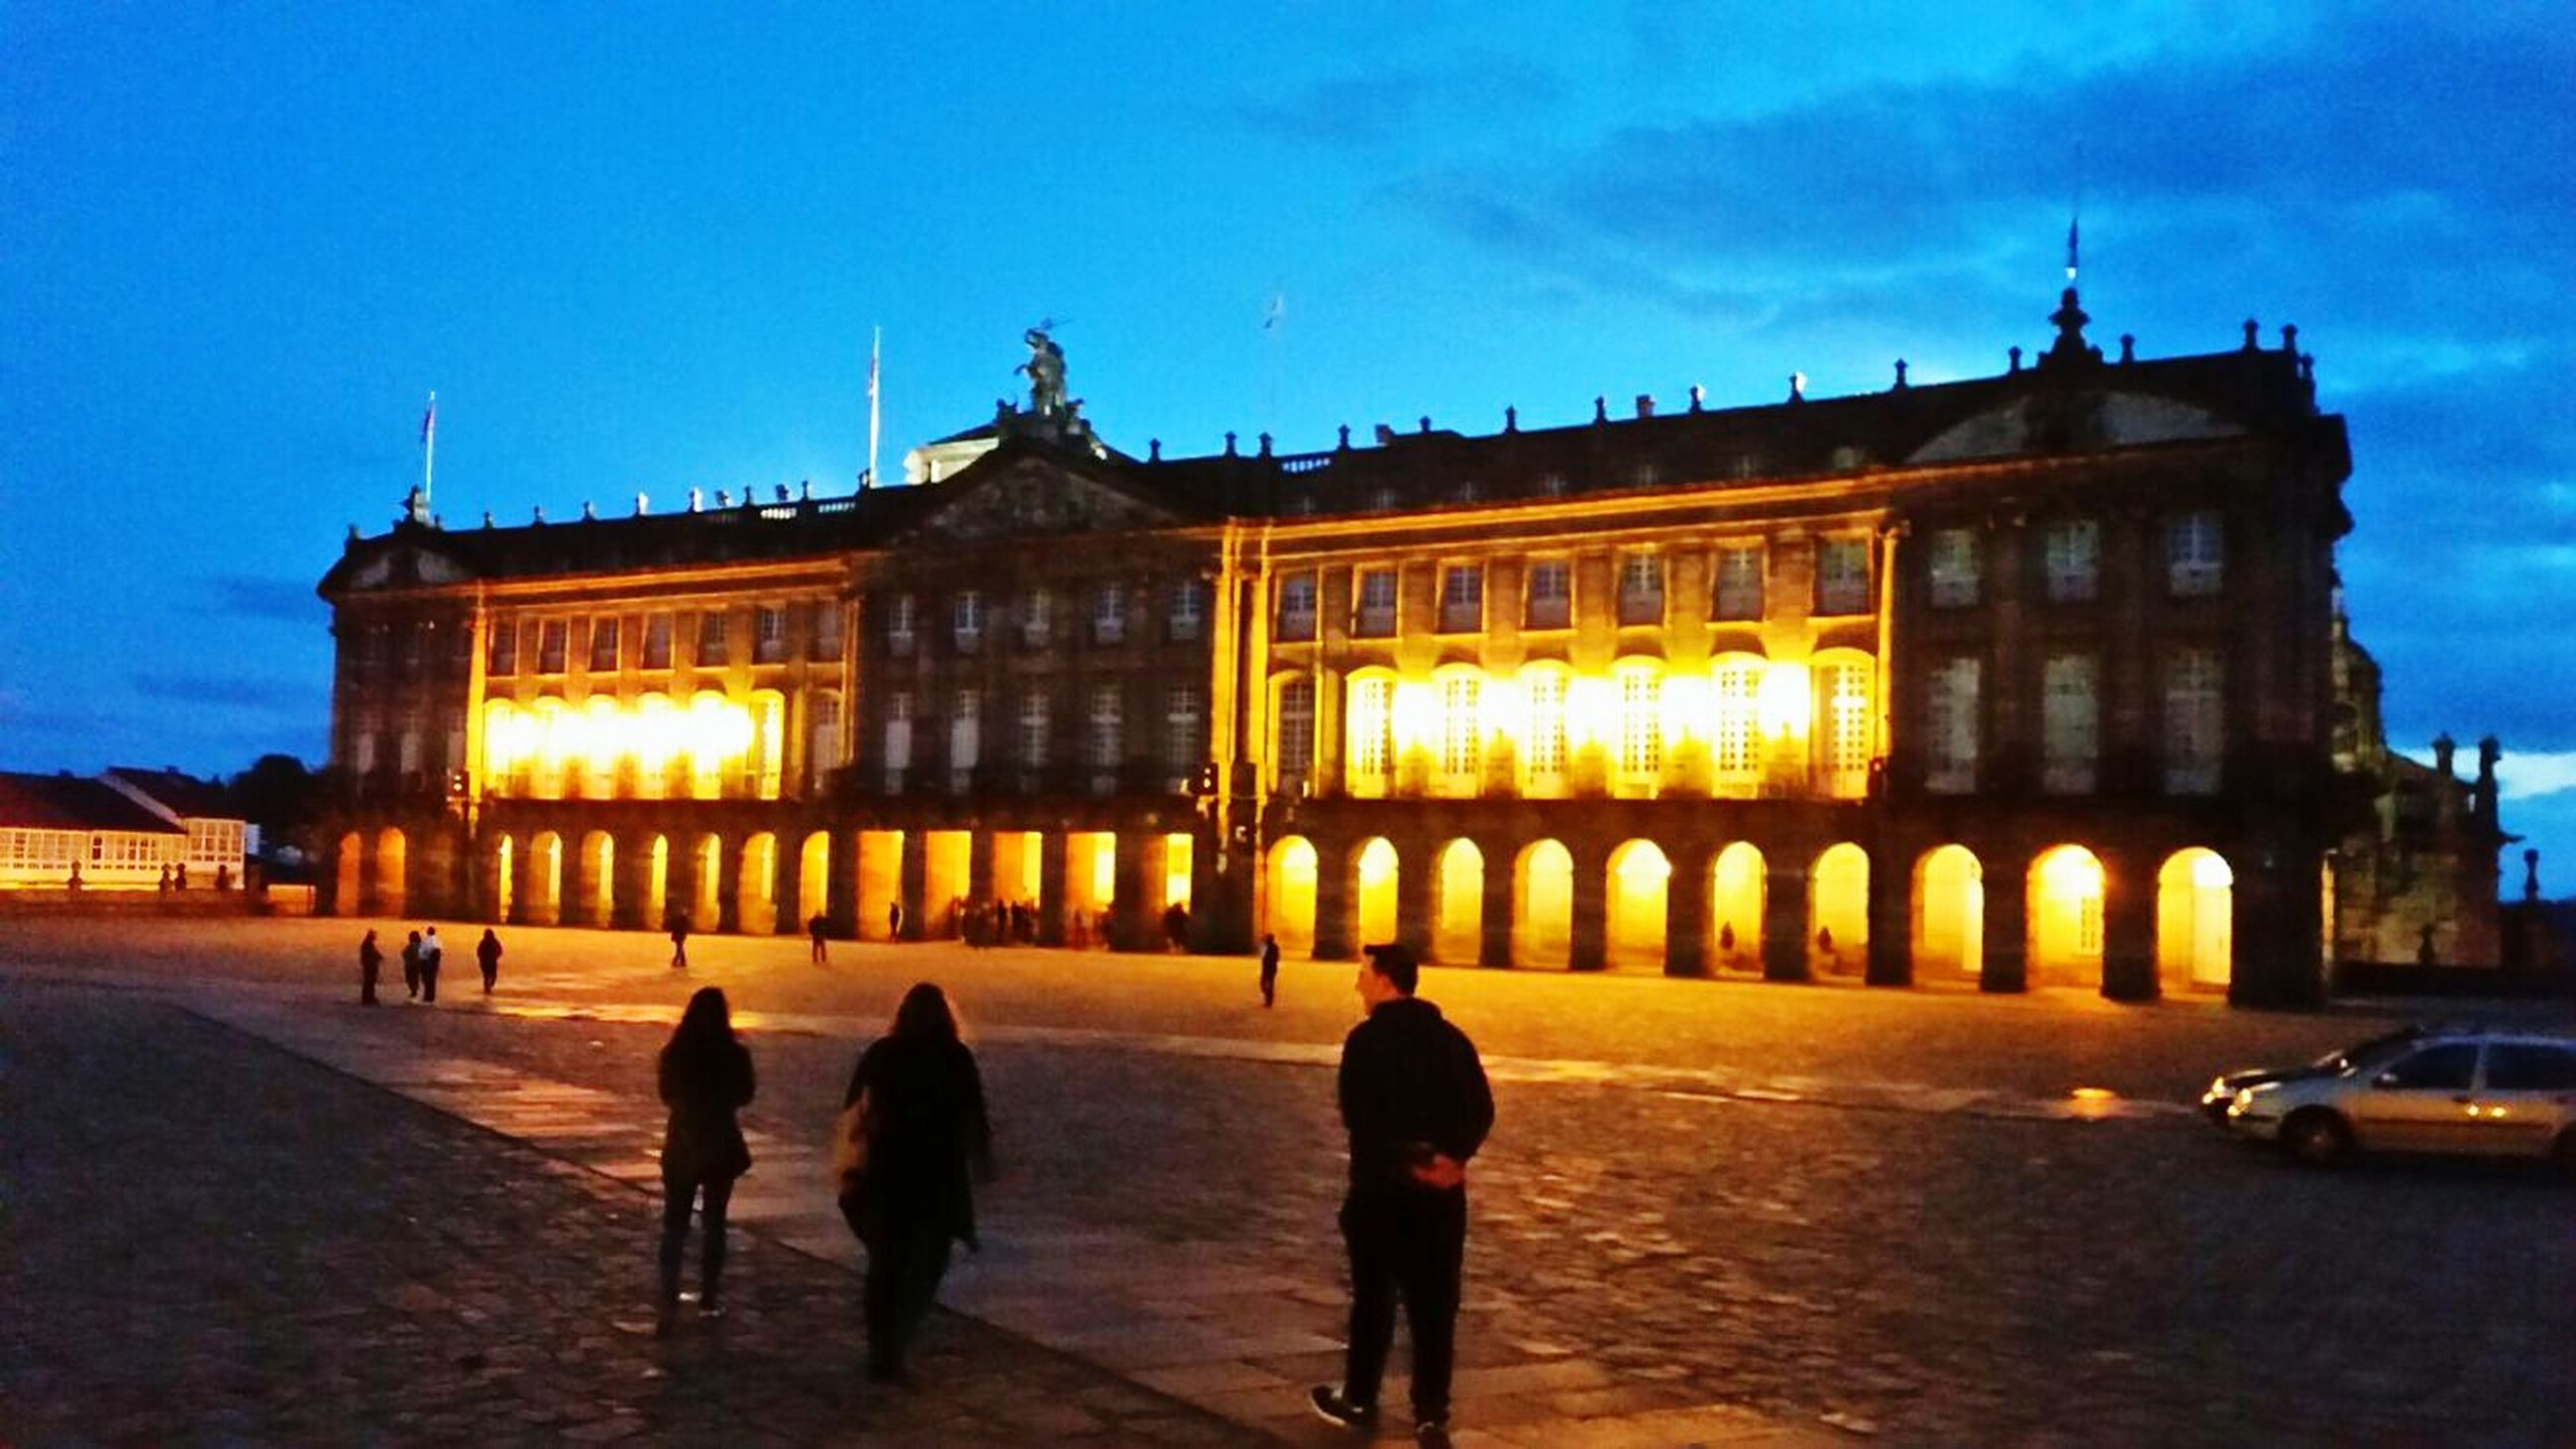 architecture, built structure, illuminated, travel destinations, building exterior, city, silhouette, tourism, walking, government, sunset, history, sky, outdoors, night, people, city gate, adult